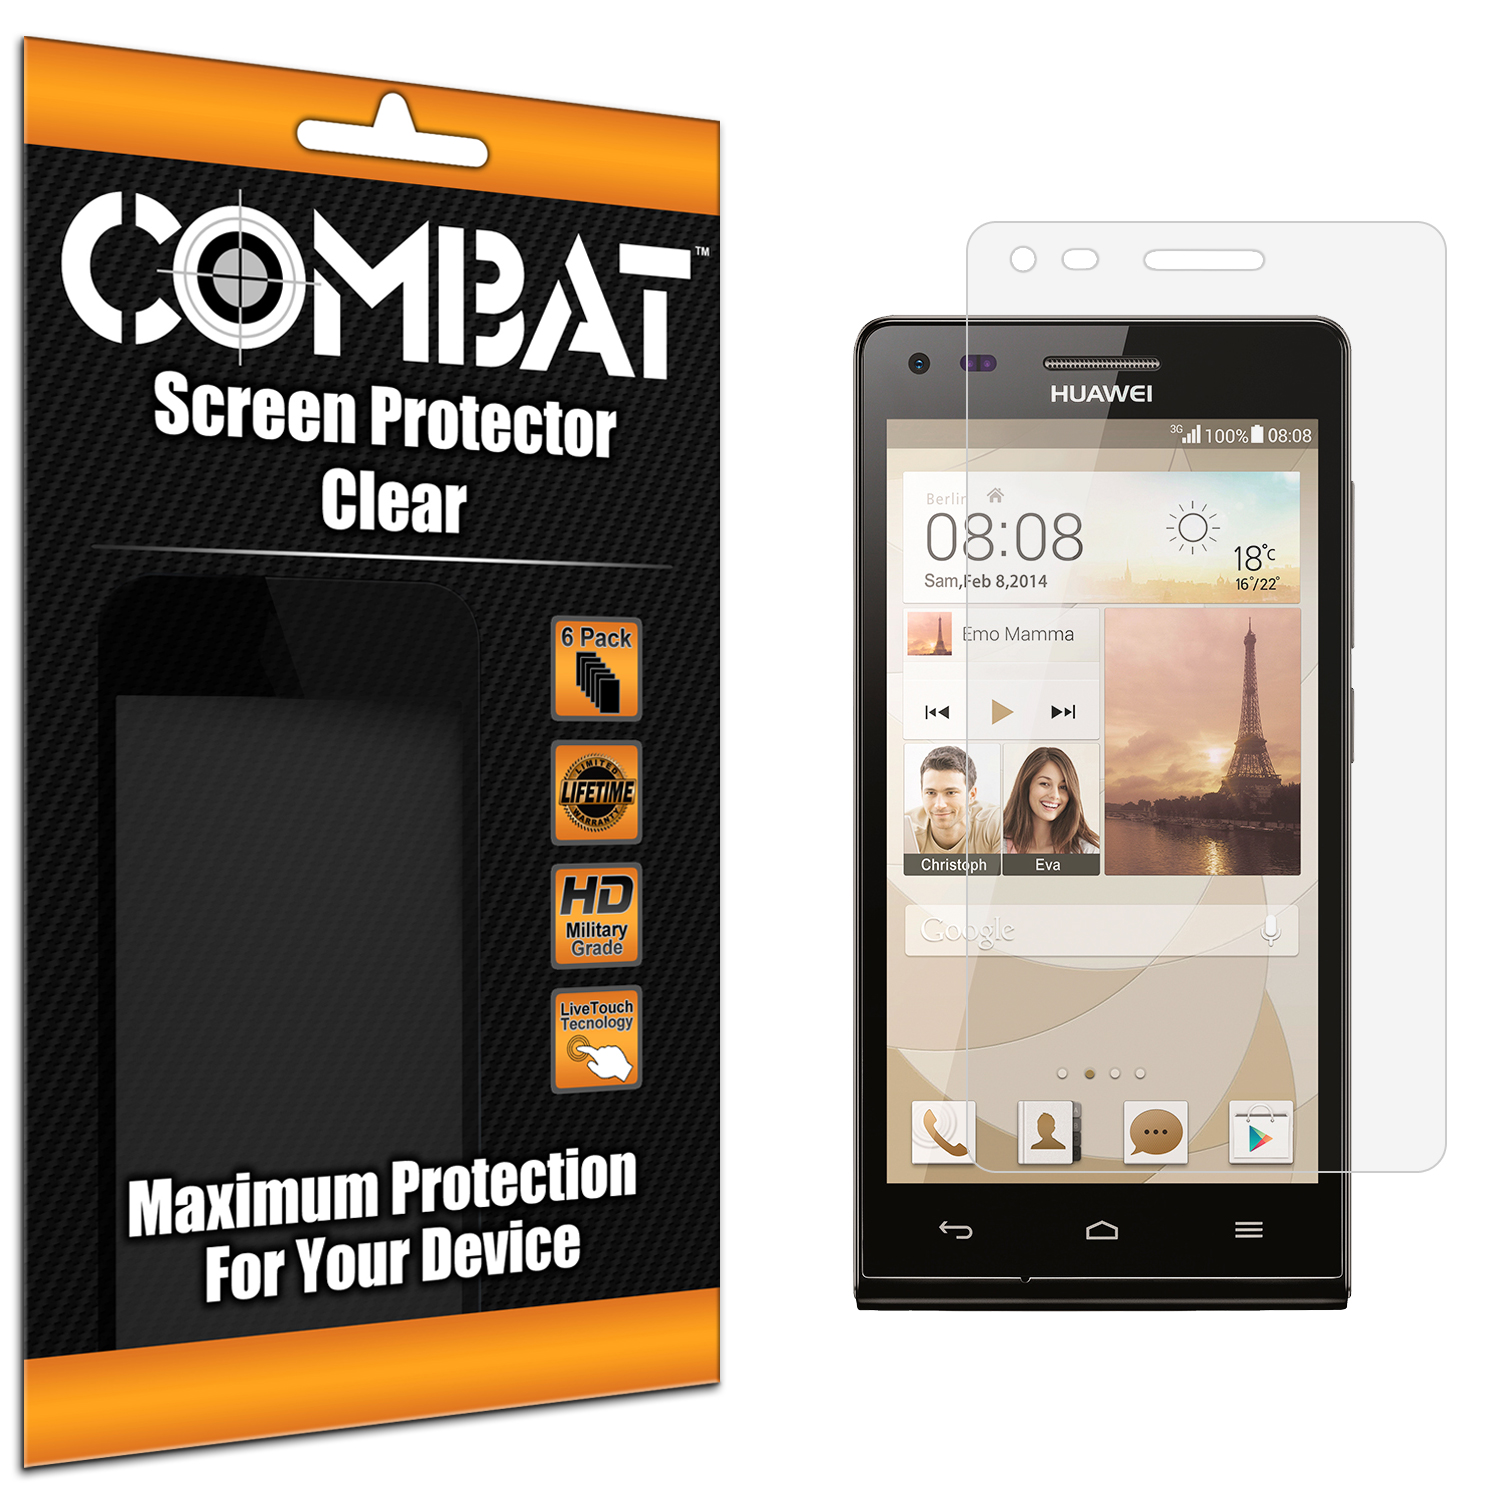 Huawei Ascend P7 Mini Combat 6 Pack HD Clear Screen Protector